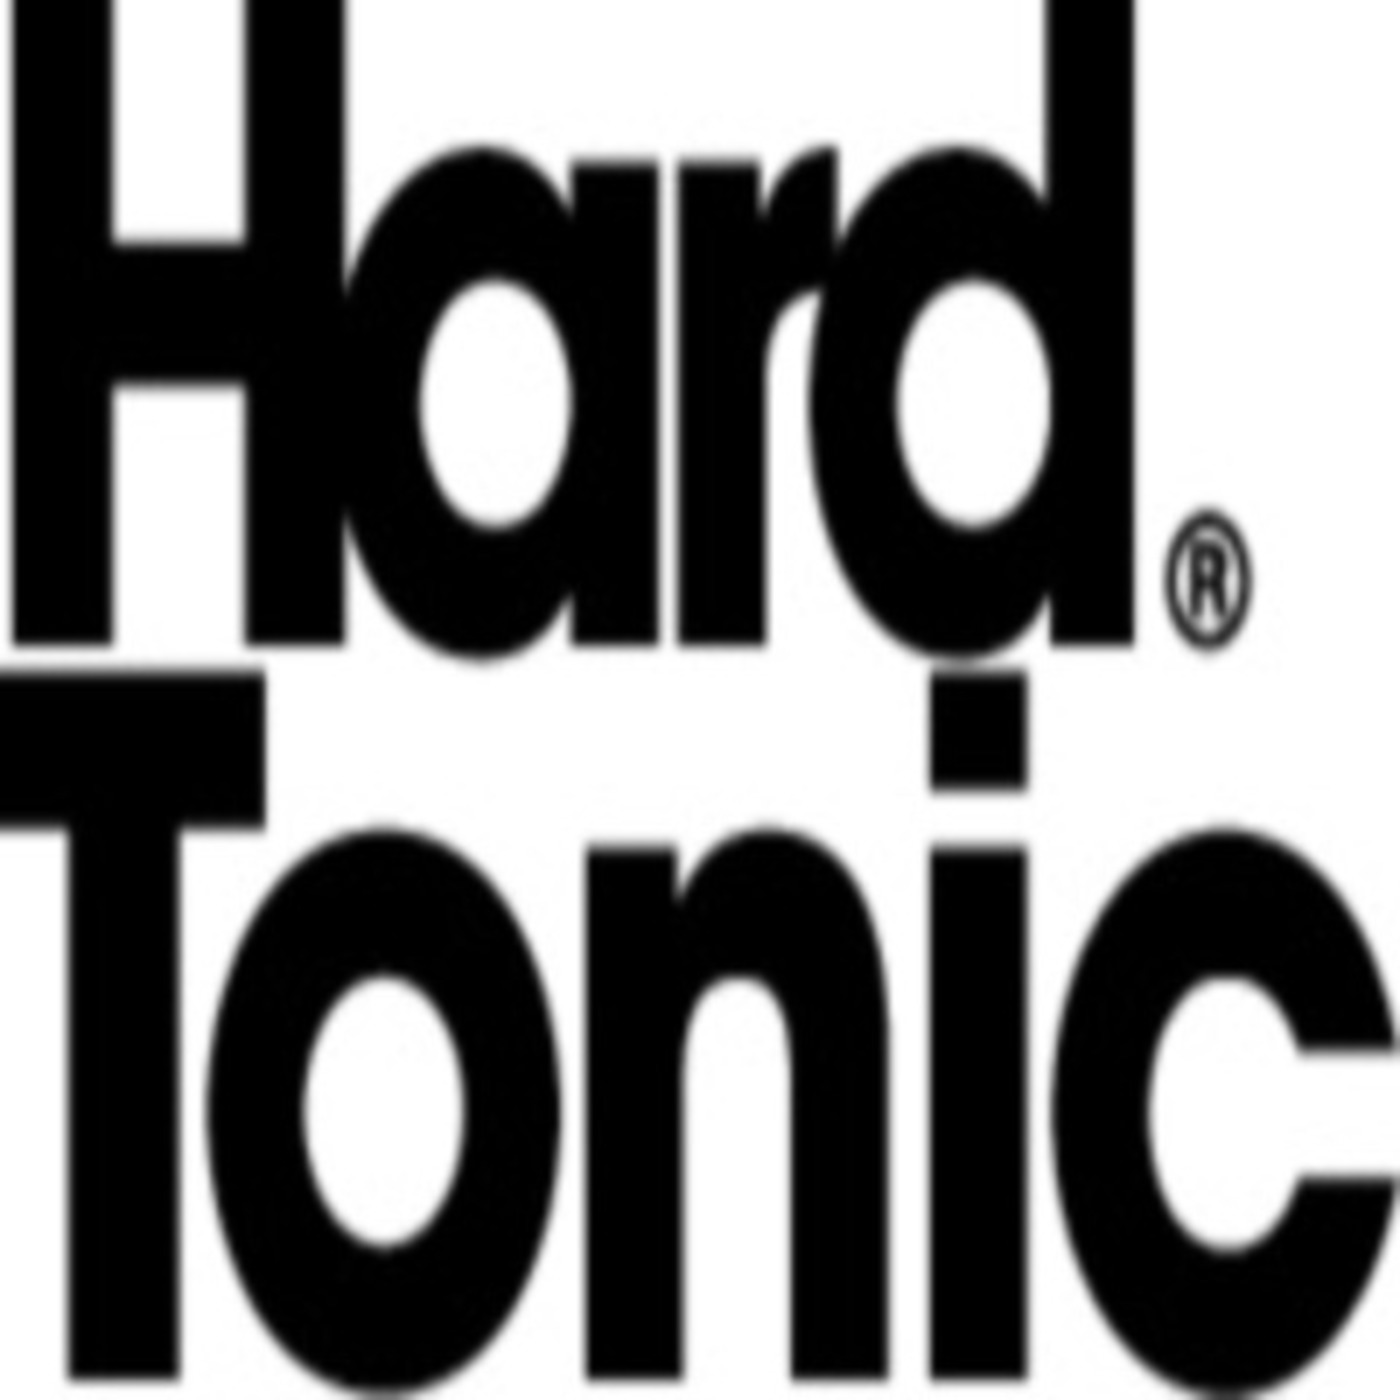 Hardtonic's Reverse Bass Injection Podcast